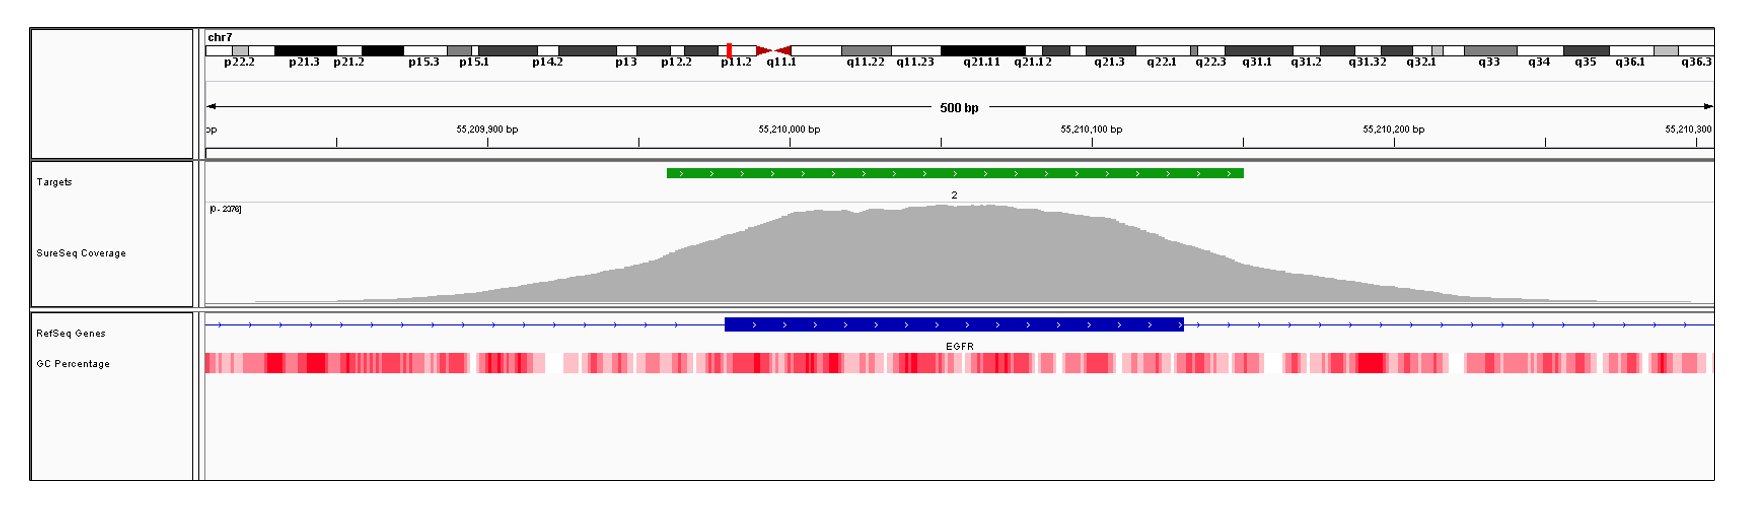 EGFR Exon 2 (hg19 chr7:55209979-55210130). Depth of coverage per base (grey). Targeted region (green). Gene coding region as defined by RefSeq (blue). GC percentage (red). Image